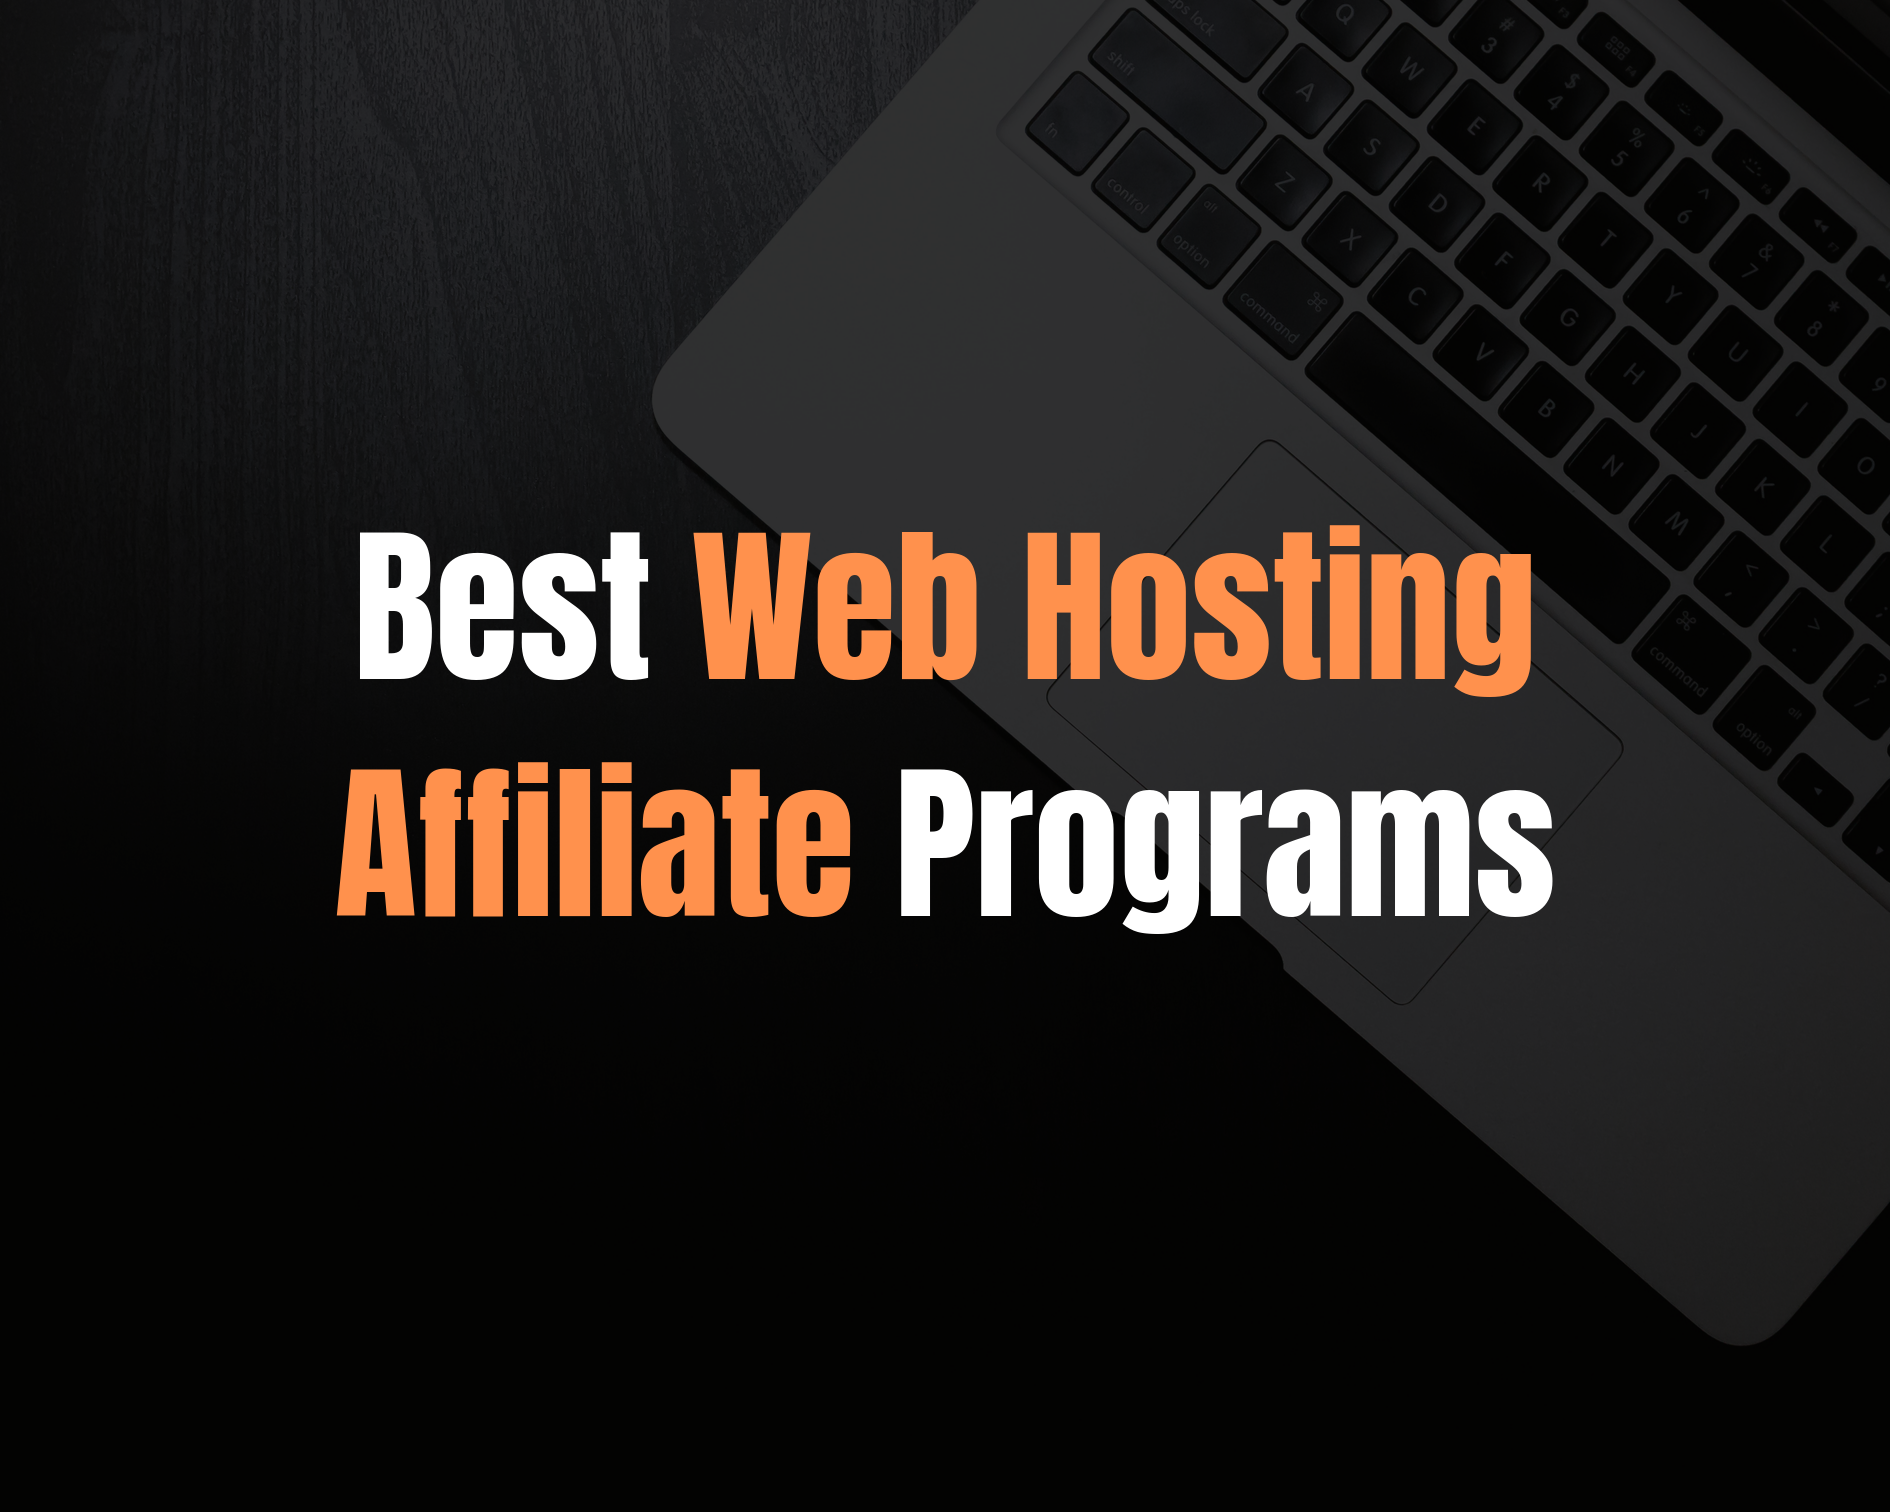 10 Best Web Hosting Affiliate Programs to Promote on Your Blog